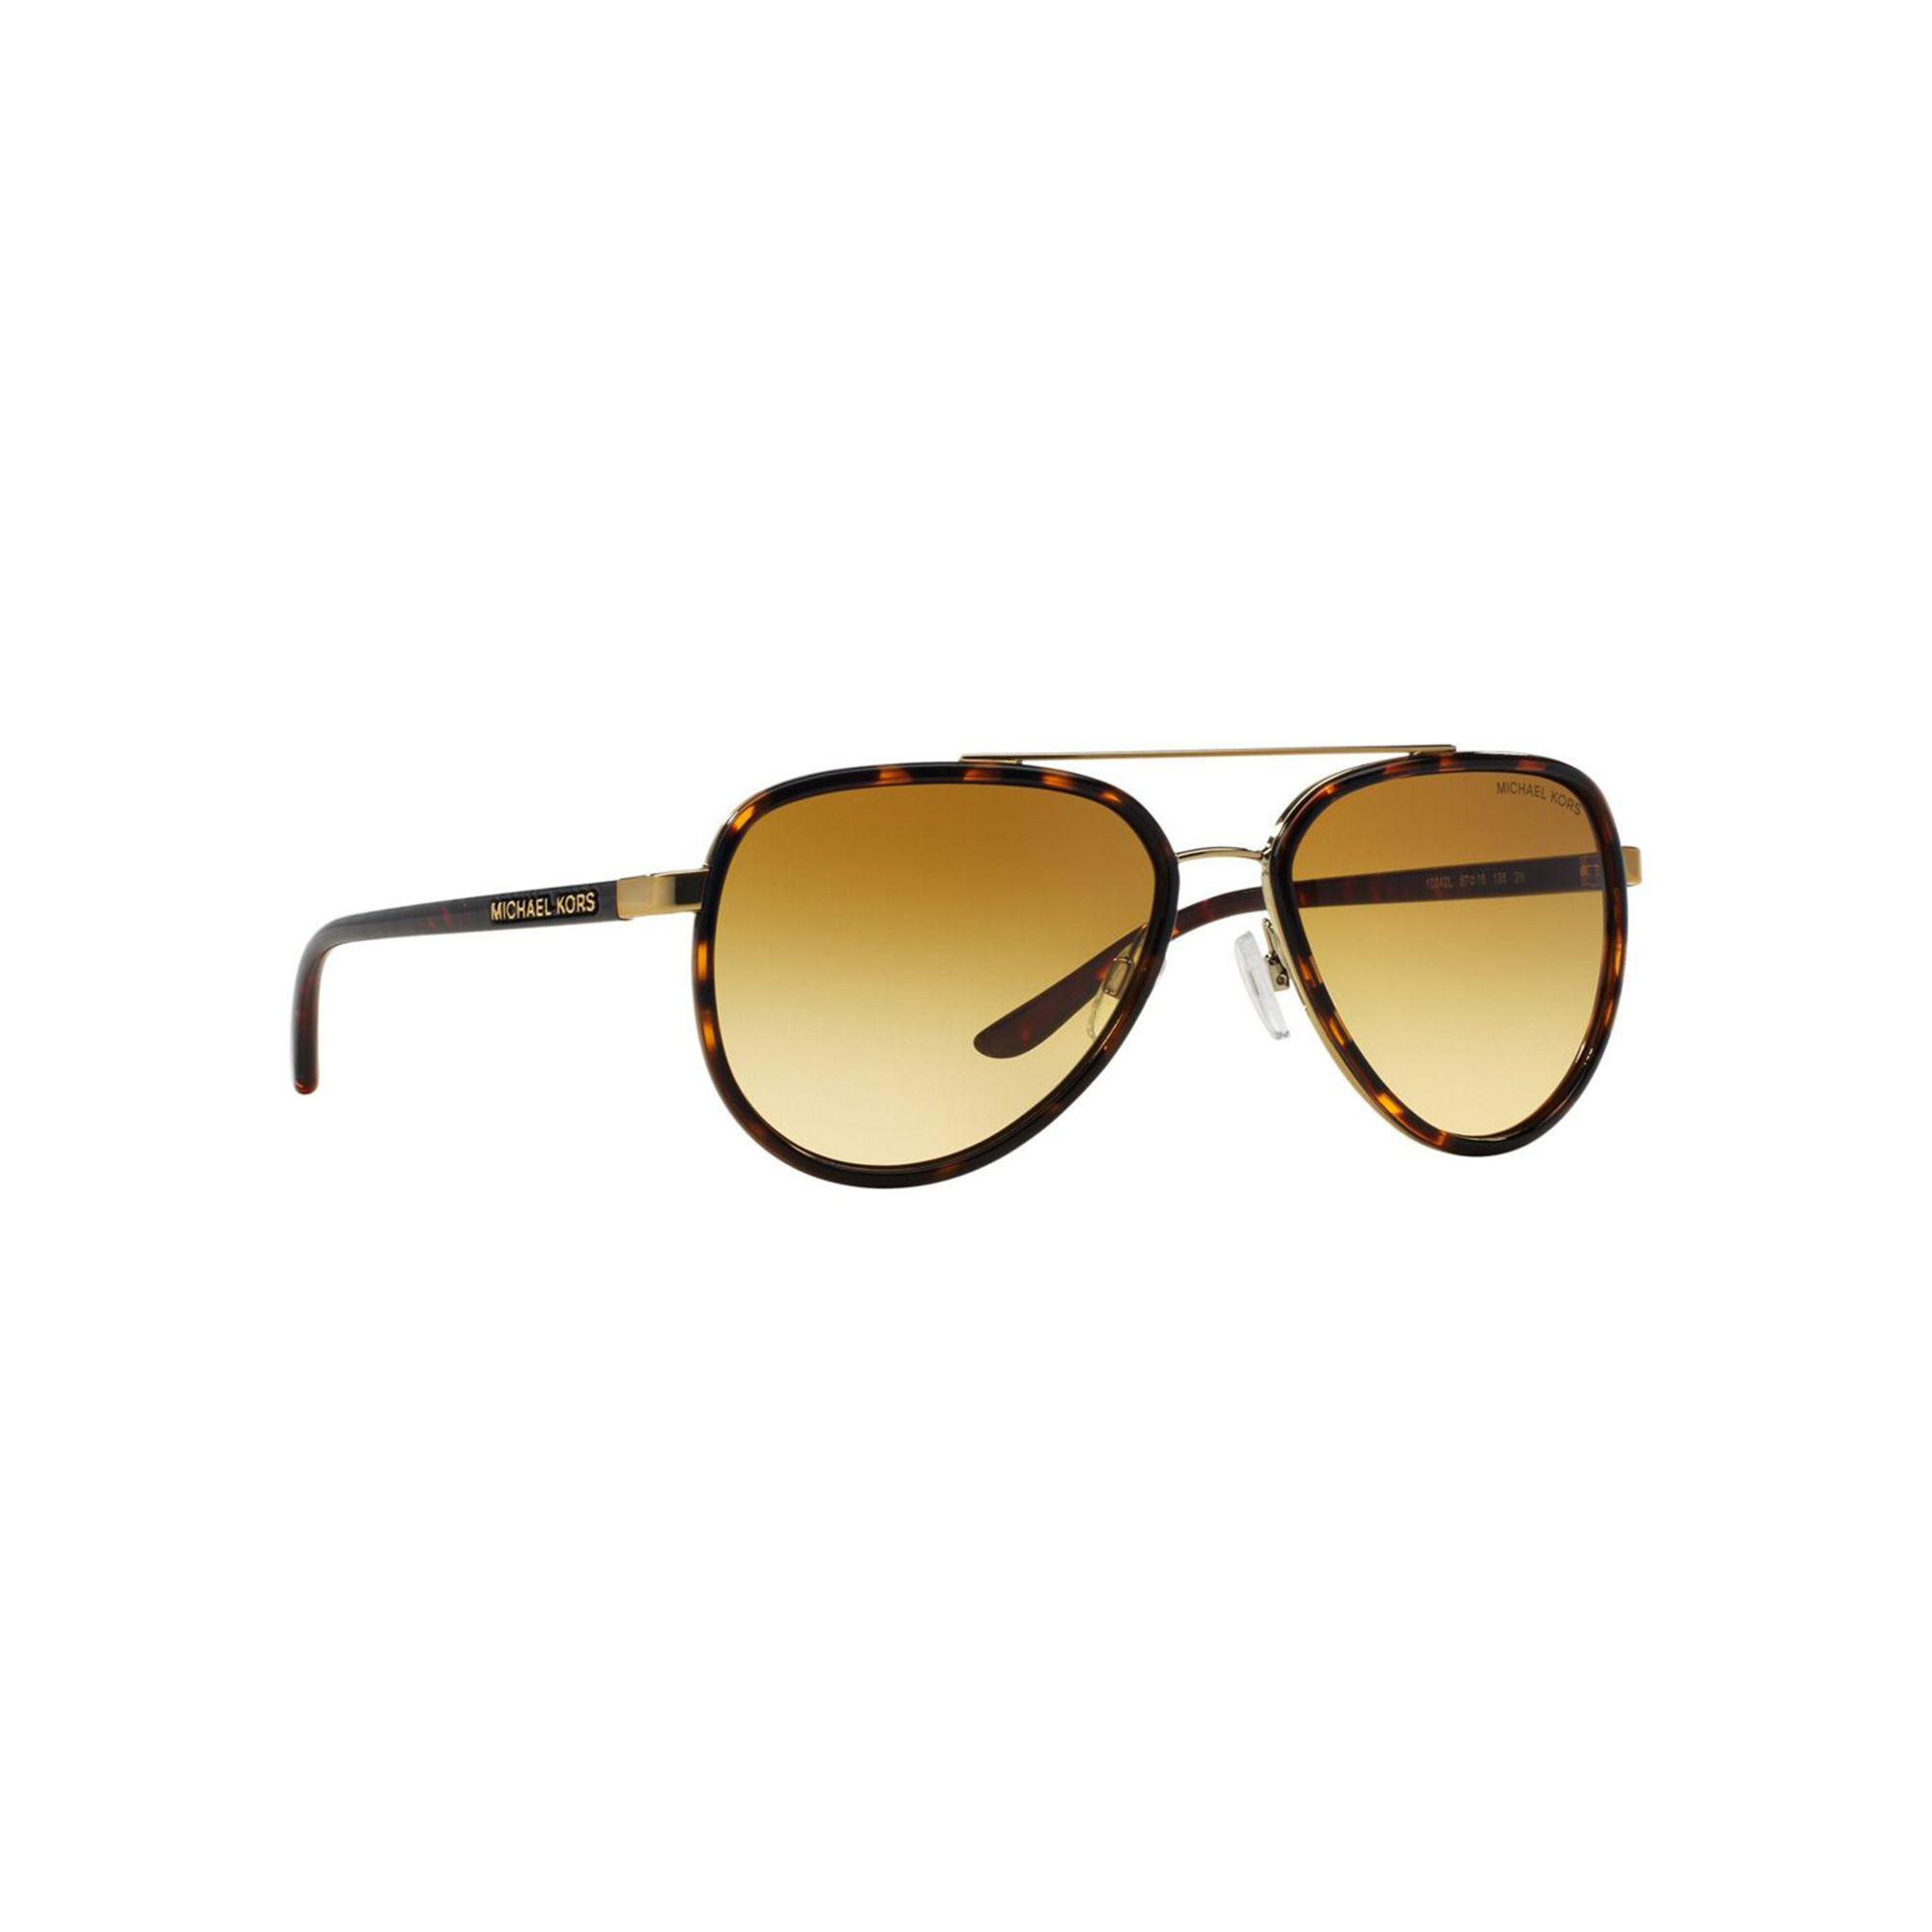 142ea25d38876 Michael Kors - Brown Mk5006 Aviator Sunglasses - Lyst. View fullscreen